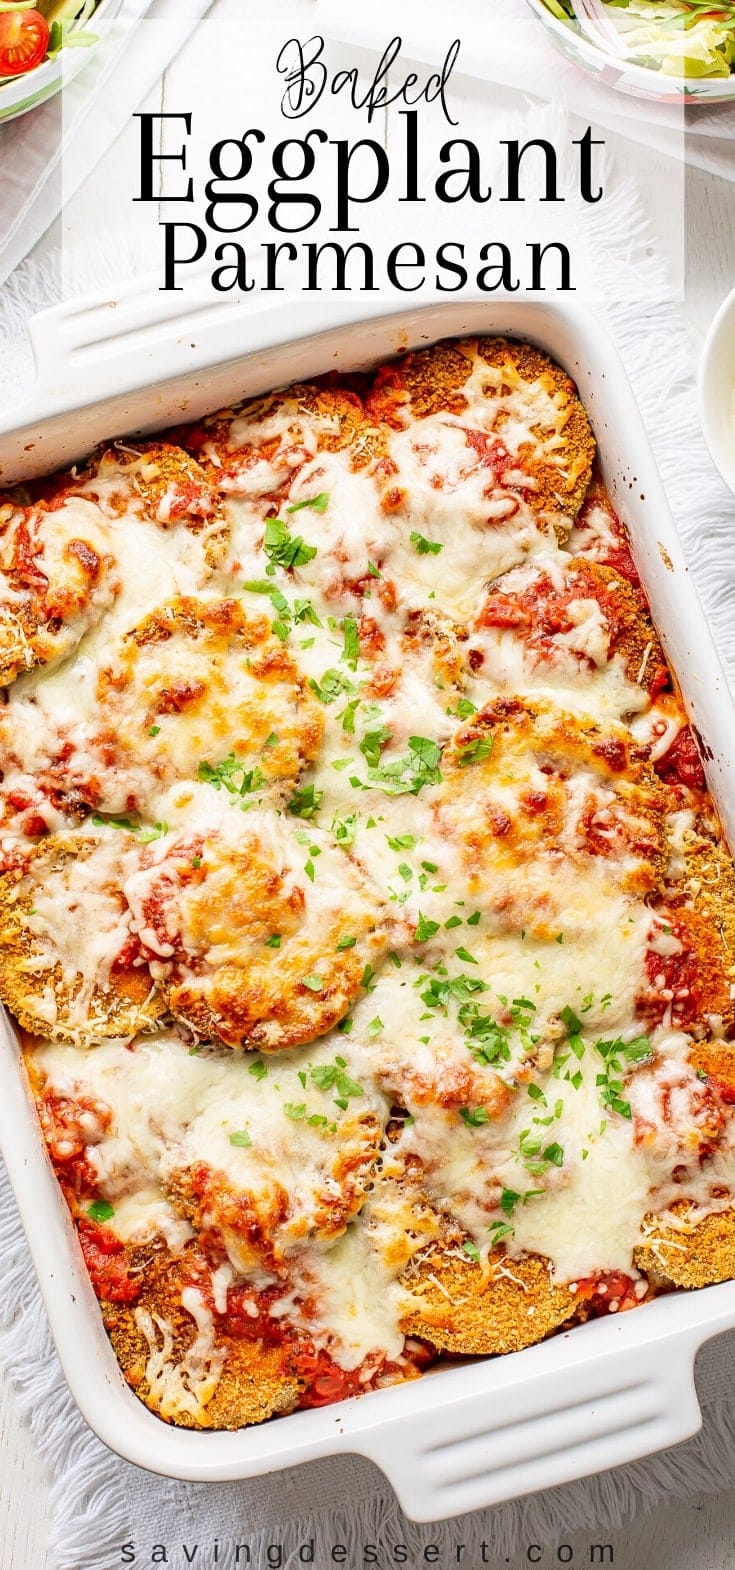 An overhead view of a casserole dish with hot baked eggplant Parmesan.